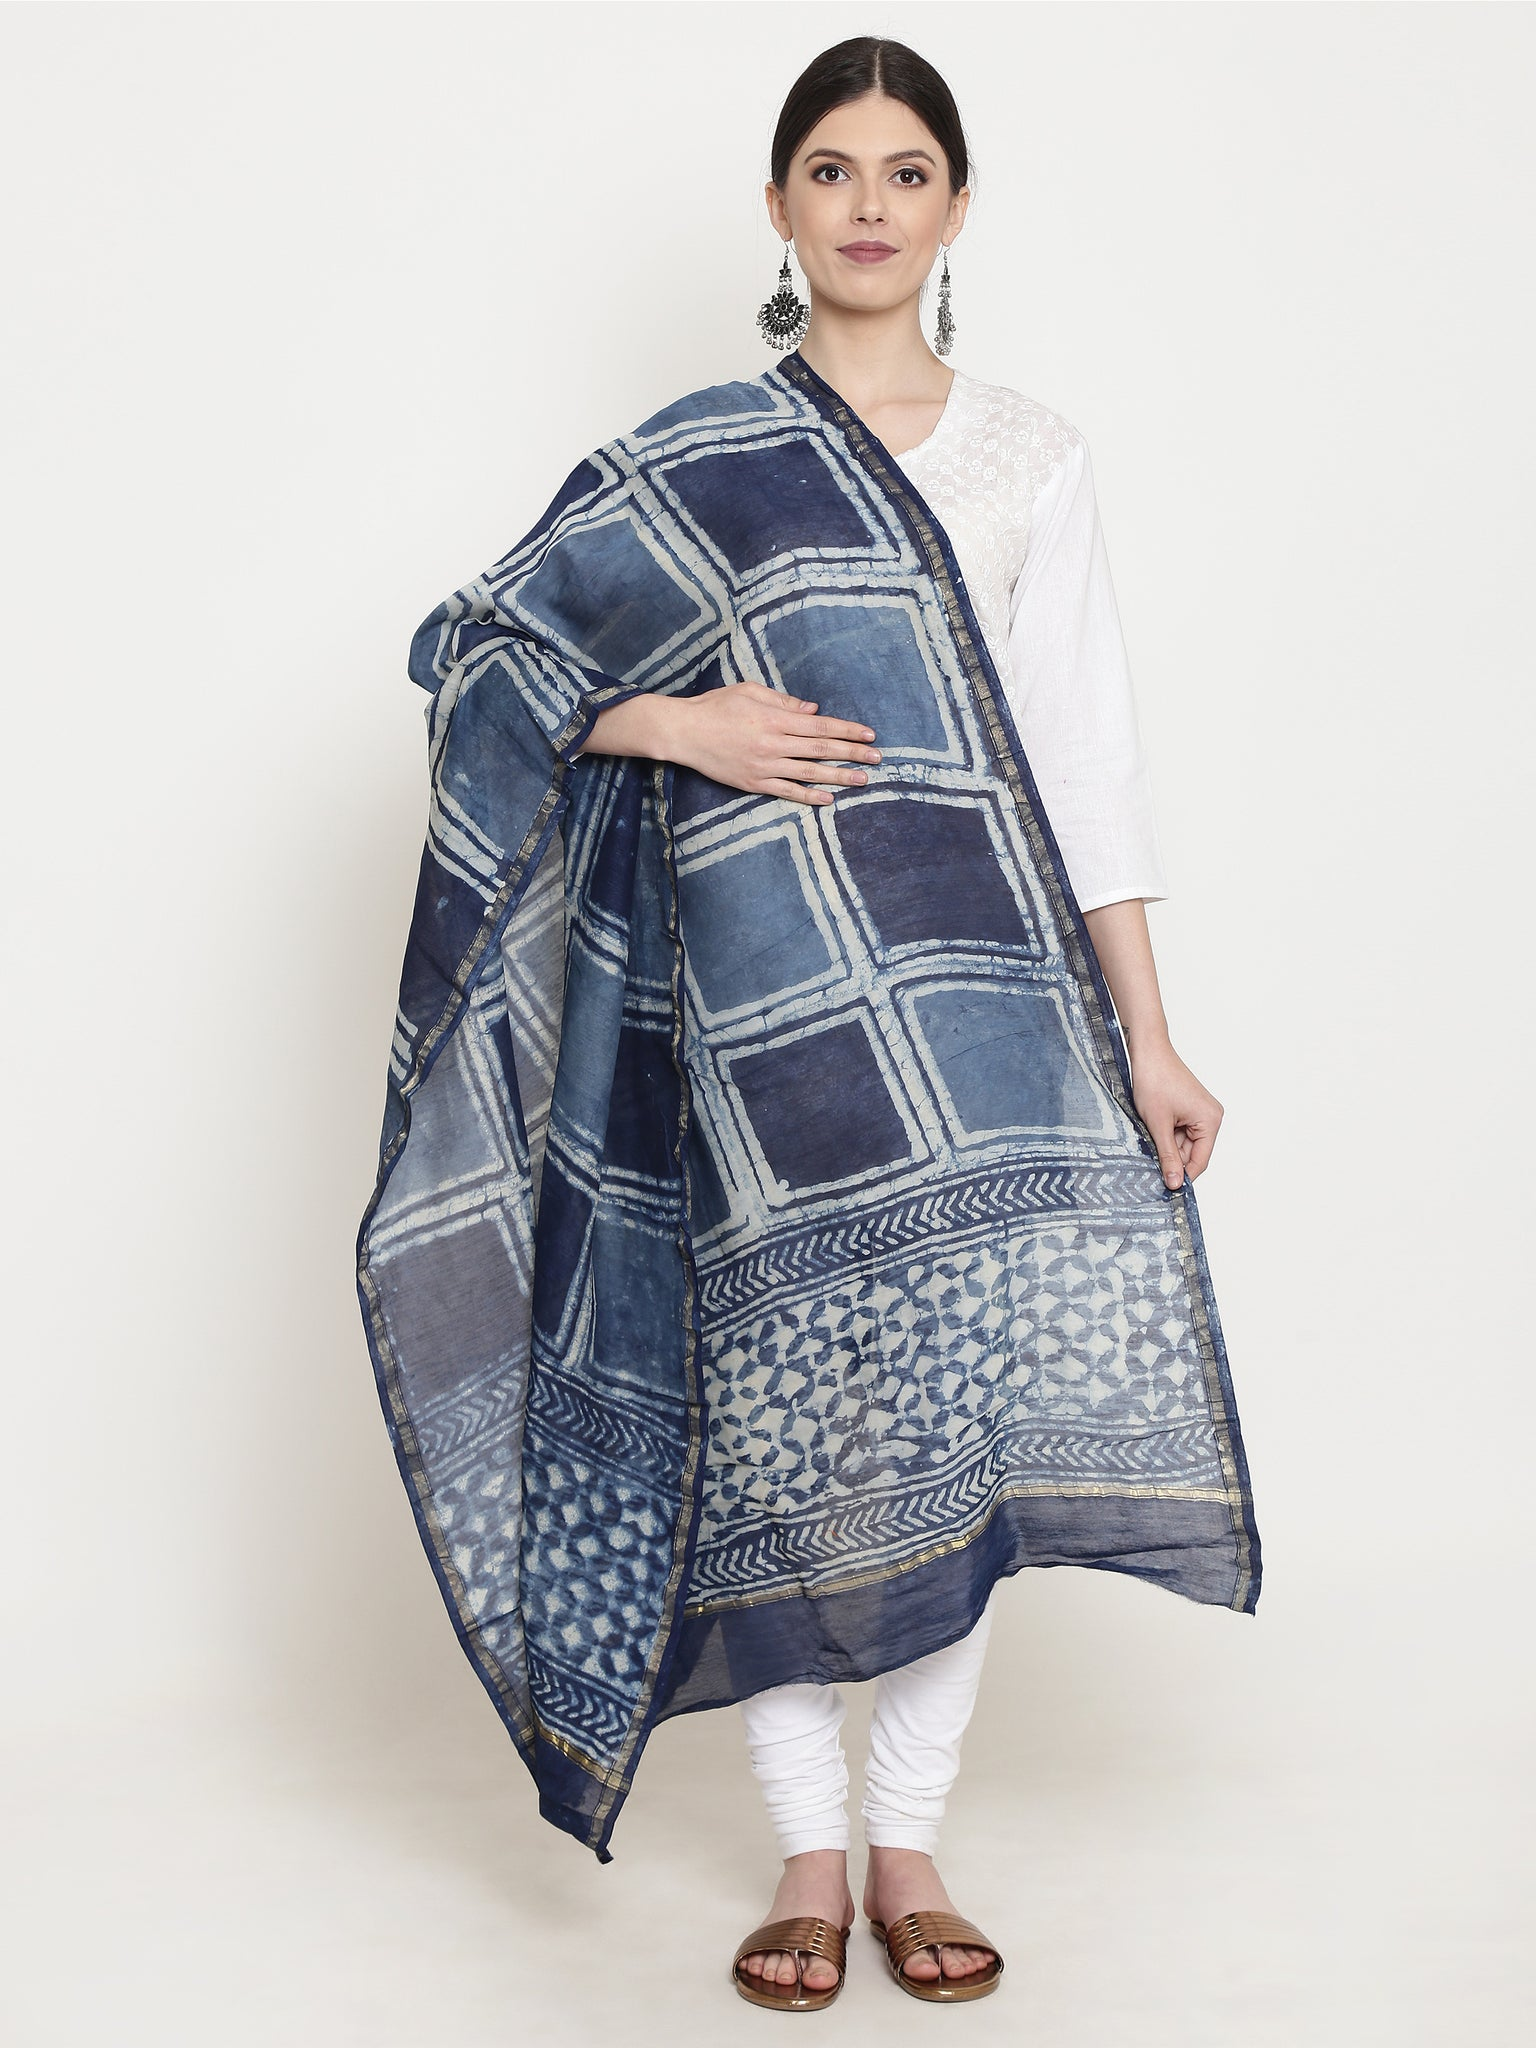 DP-Kalakari India-[Linen,Ethnic,wear,Fashionista,Handloom,Handicraft,Indigo,blockprint,block,print,Cotton,Chanderi,Blue, latest,classy,party,bollywood,trendy,summer,style,traditional,formal,elegant,unique,style,hand,block,print, dabu,booti,gift,present,glamorous,affordable,collectible,Sari,Saree,printed, holi, Diwali, birthday, anniversary, sustainable, organic, scarf, online, low price, discount, Indian saree, Indian sari]-Kalakari India